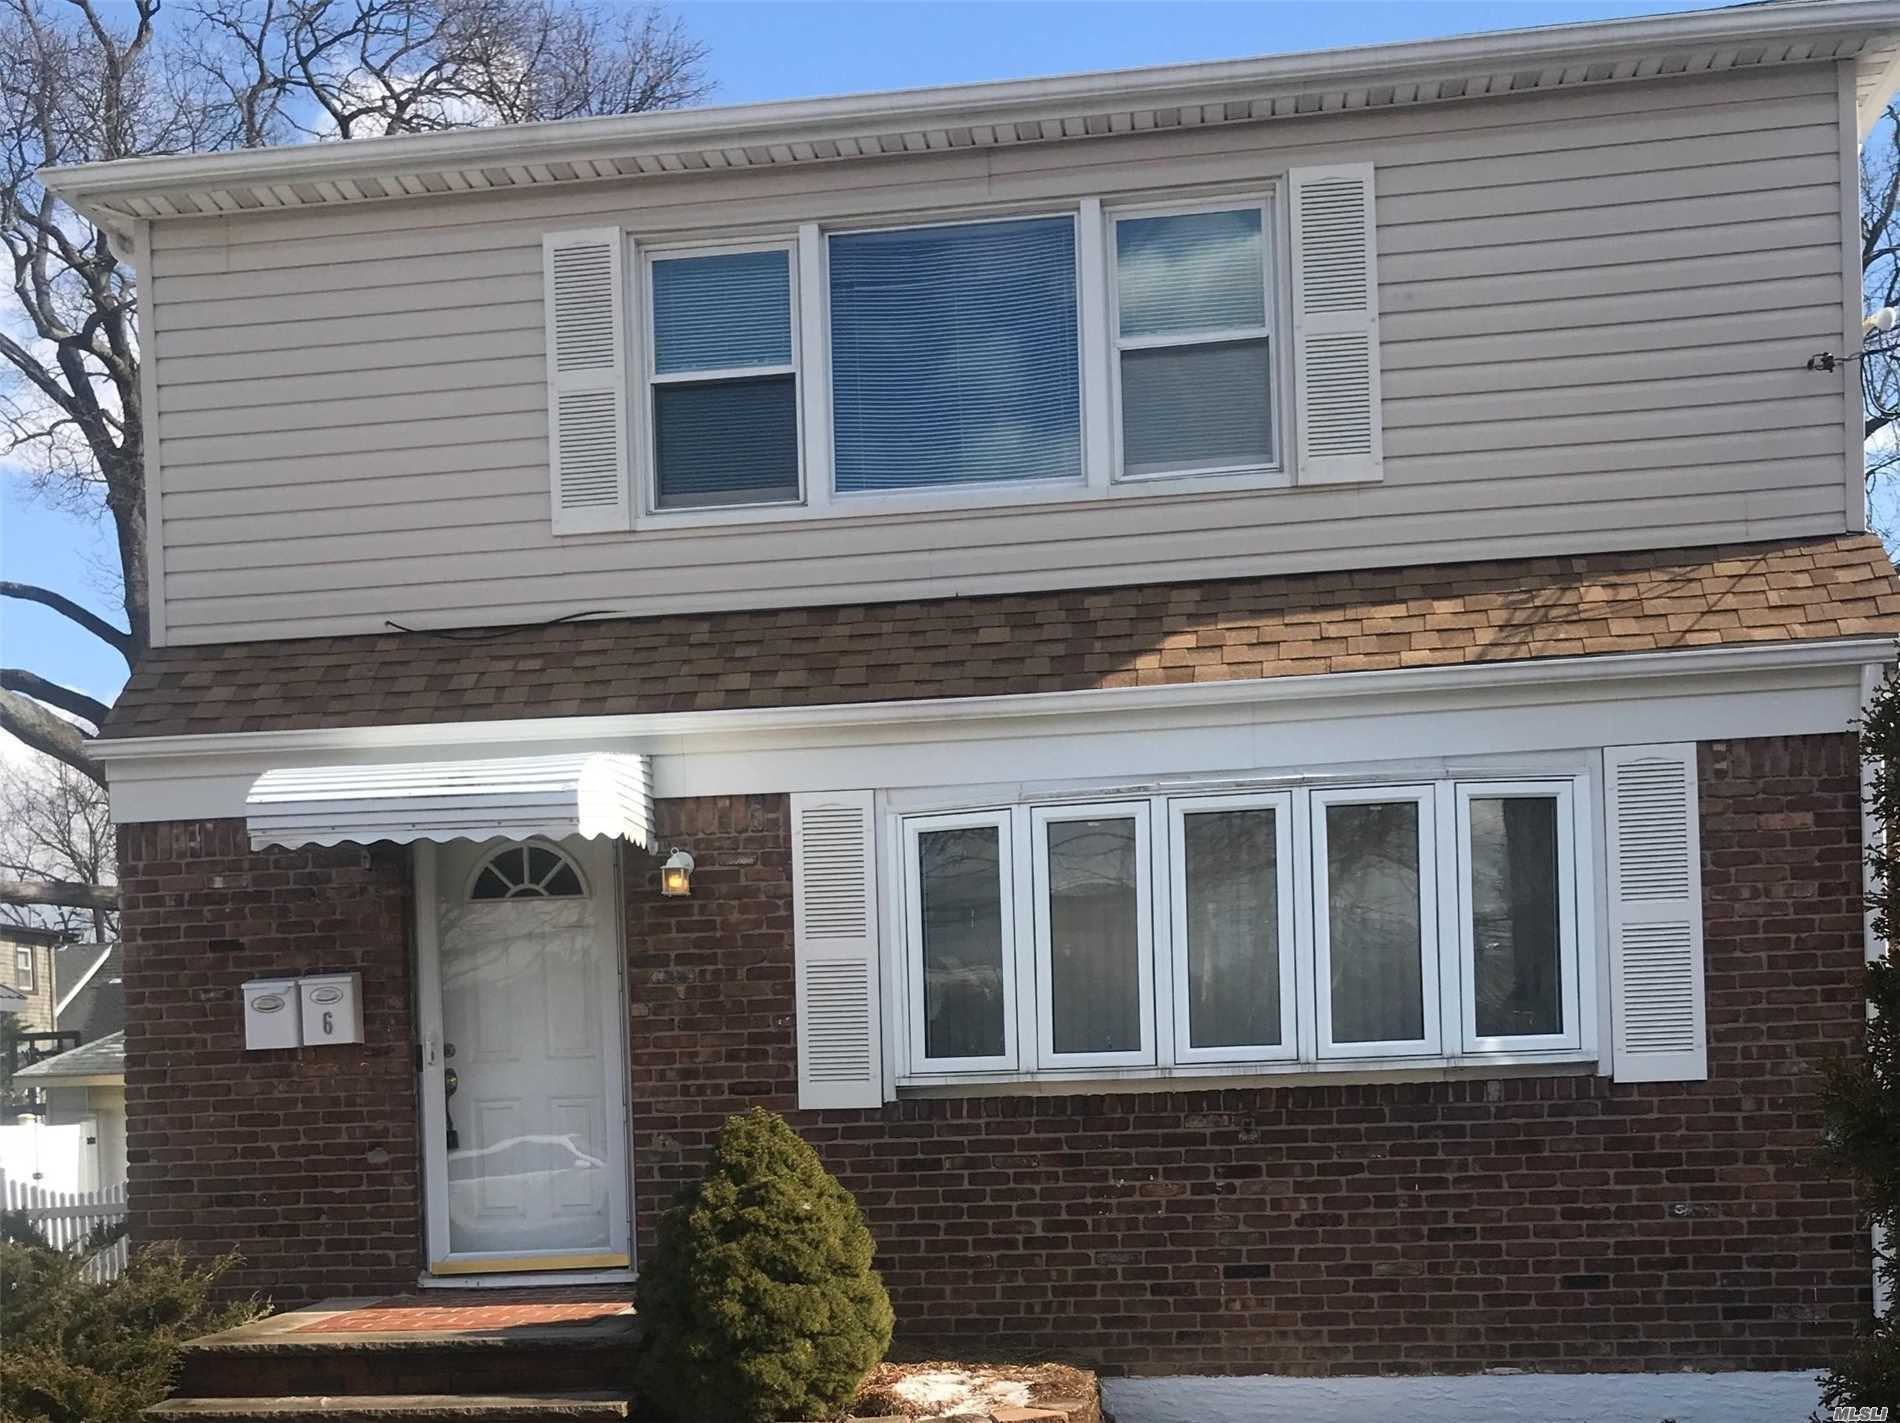 Spacious And Well Maintained 2 Bedroom Apartment Located On Top Floor Of 2 Story Home. Living Room, Dining Room, Eat In Kitchen, Large Master Bedroom With 2 Closets. Parking For 2 Cars. Gas And Electric Not Included. A/C Allowed In Window No Pets.